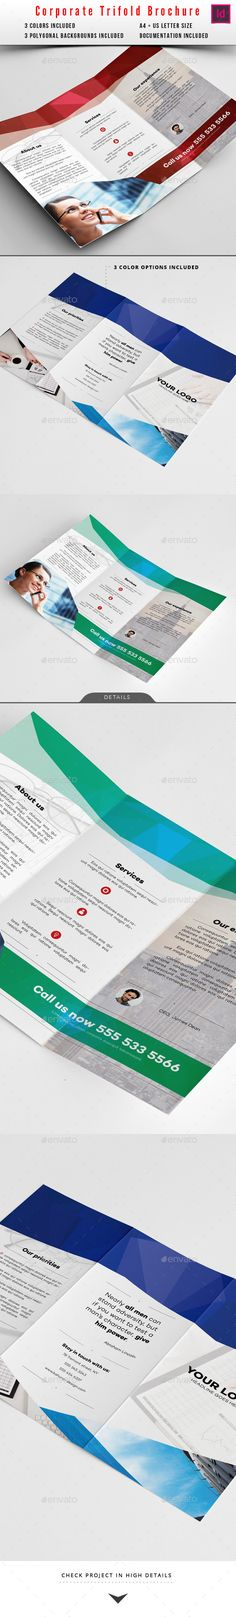 Corporate Trifold Brochure Template | Buy and Download: http://graphicriver.net/item/corporate-trifold-brochure/10124544?ref=ksioks